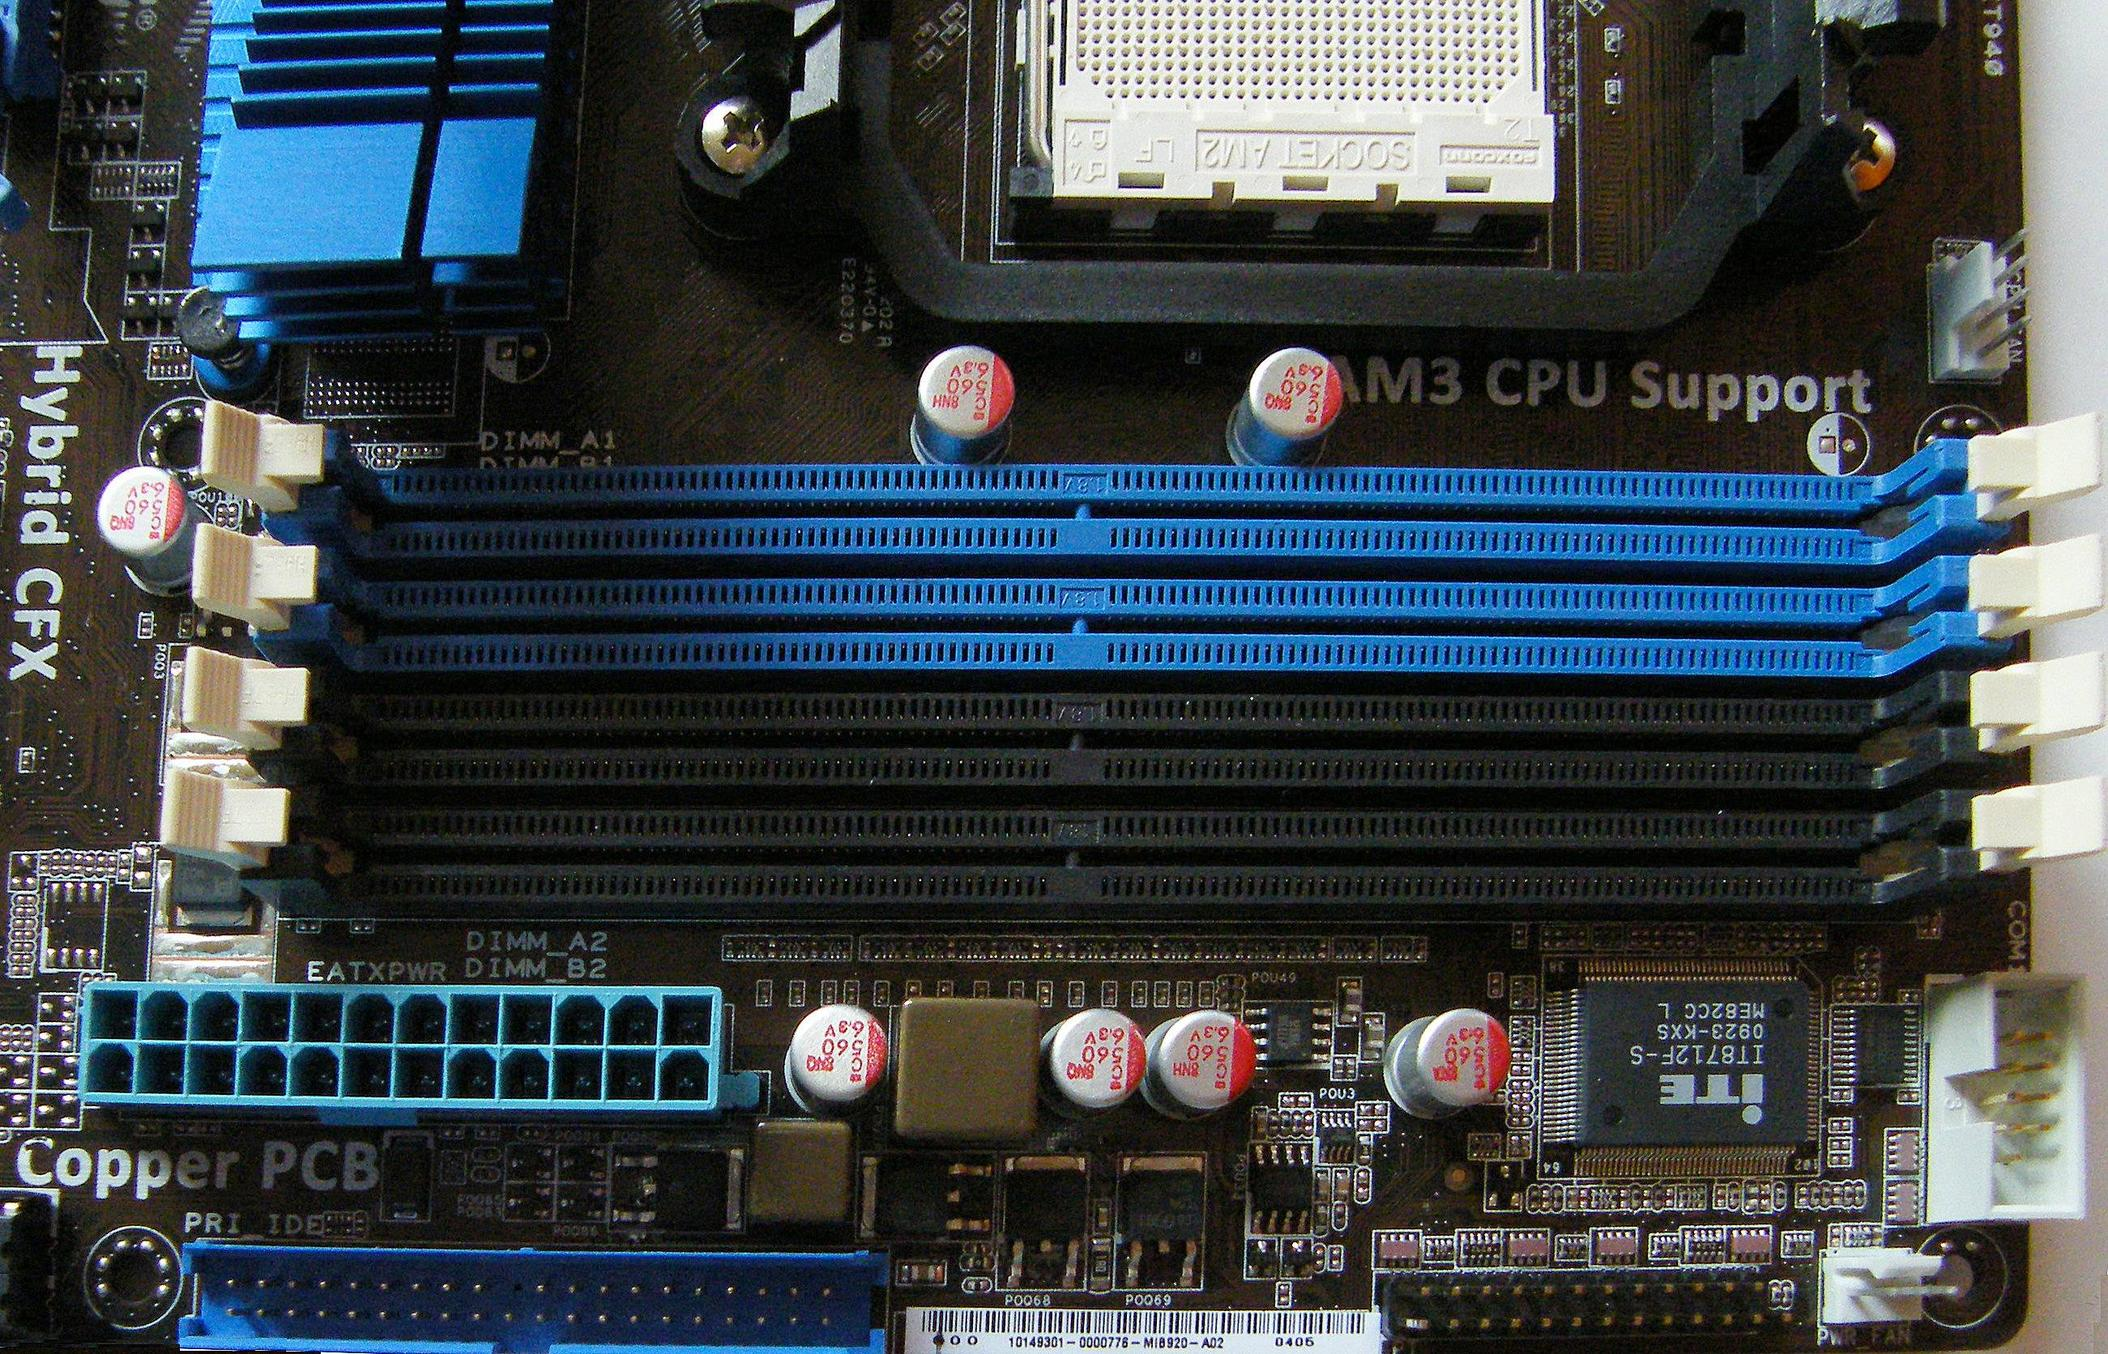 Multipurpose Installing Sticks Which A Pc Brands Can You Mix Ram Brands Slots To Memory Installing Sticks Which Slots To Populate Can I Mix Ram Speeds dpreview Can You Mix Ram Brands